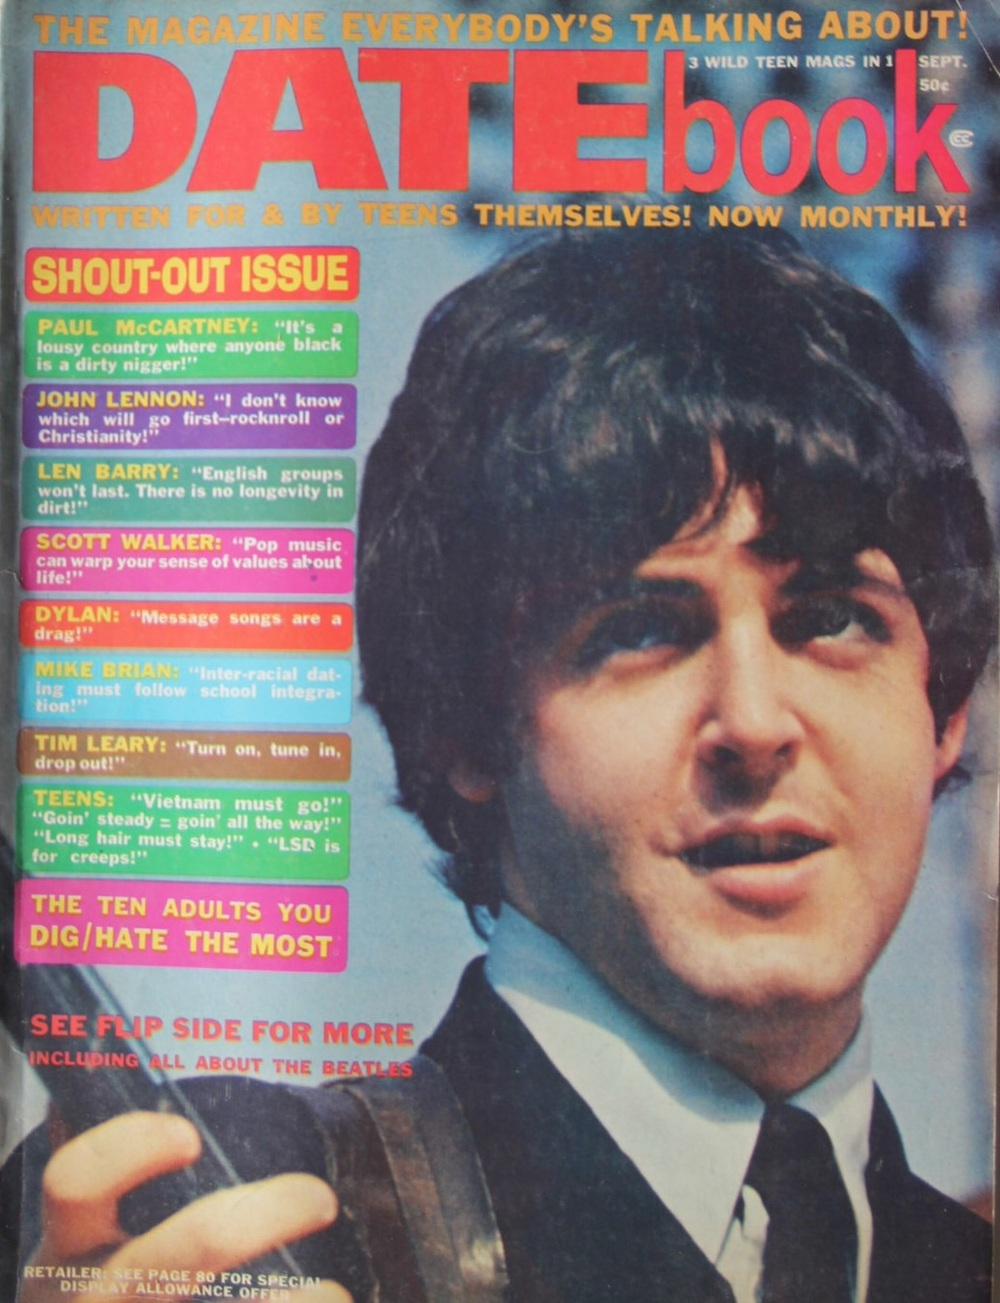 The infamous Datebook magazine issue, 1966.